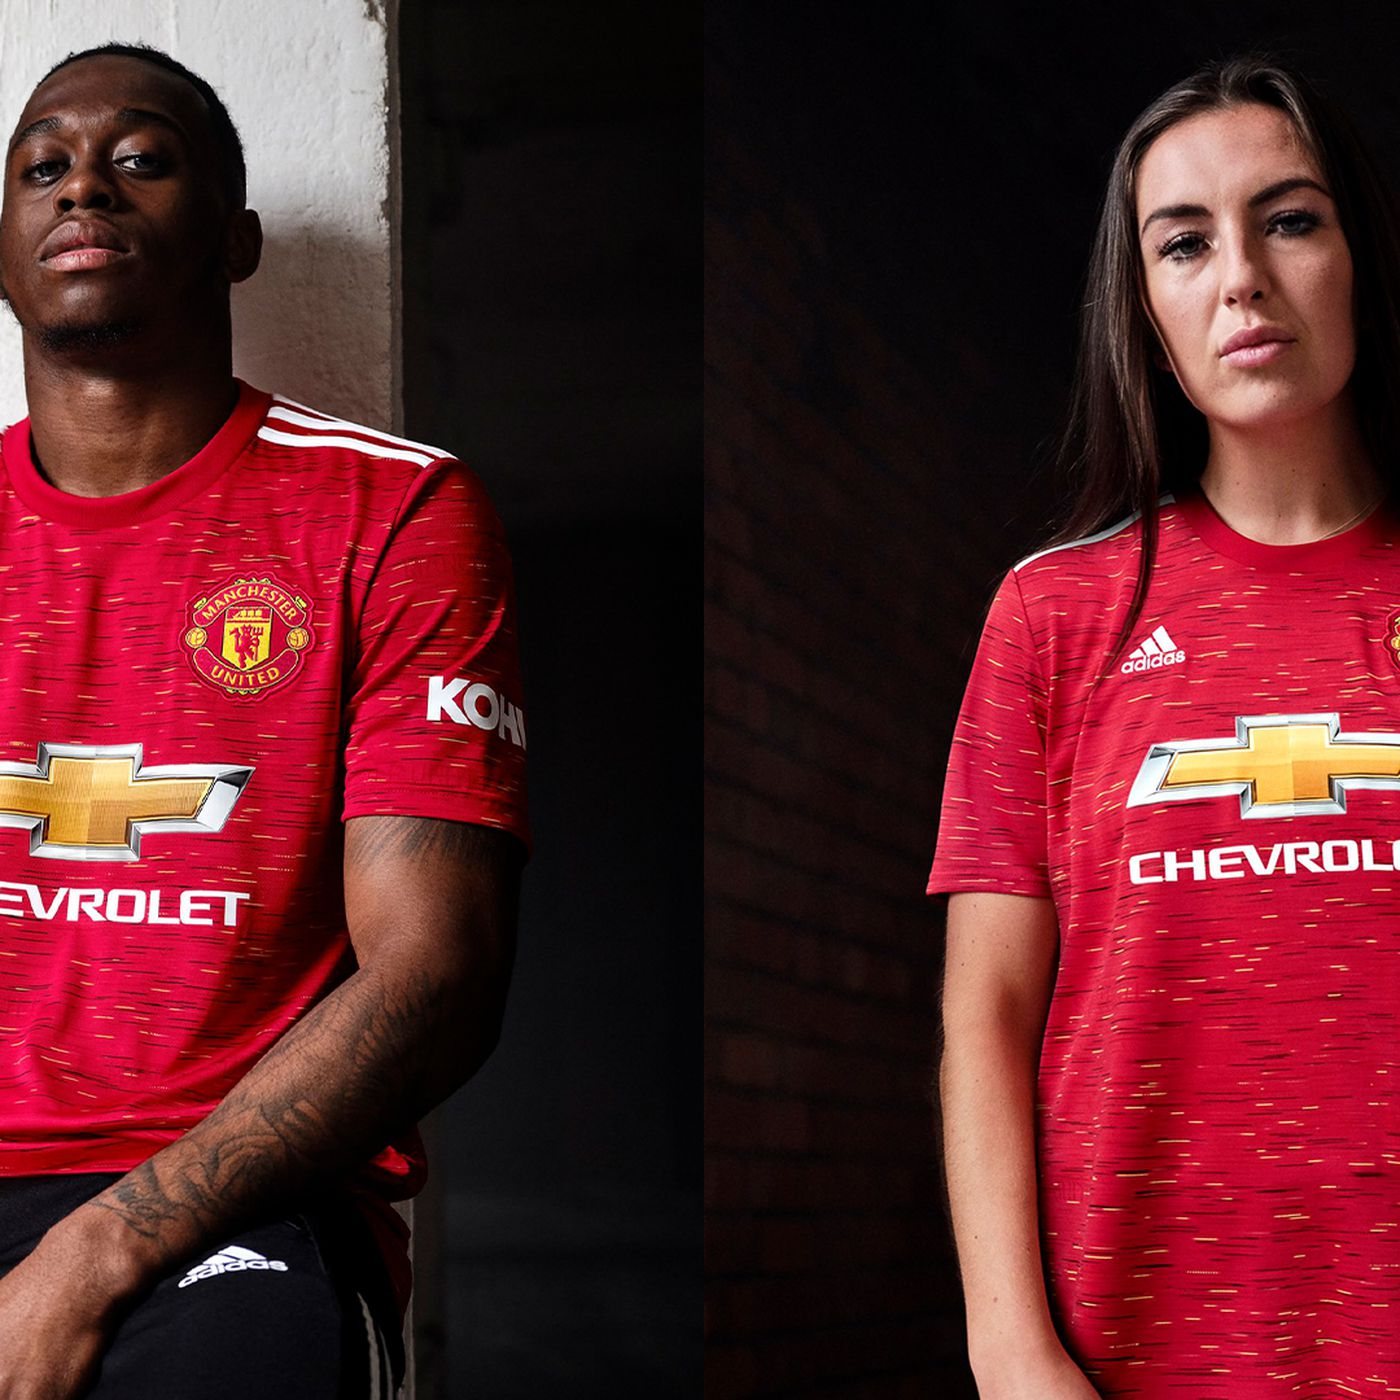 The Best Manchester United Kit